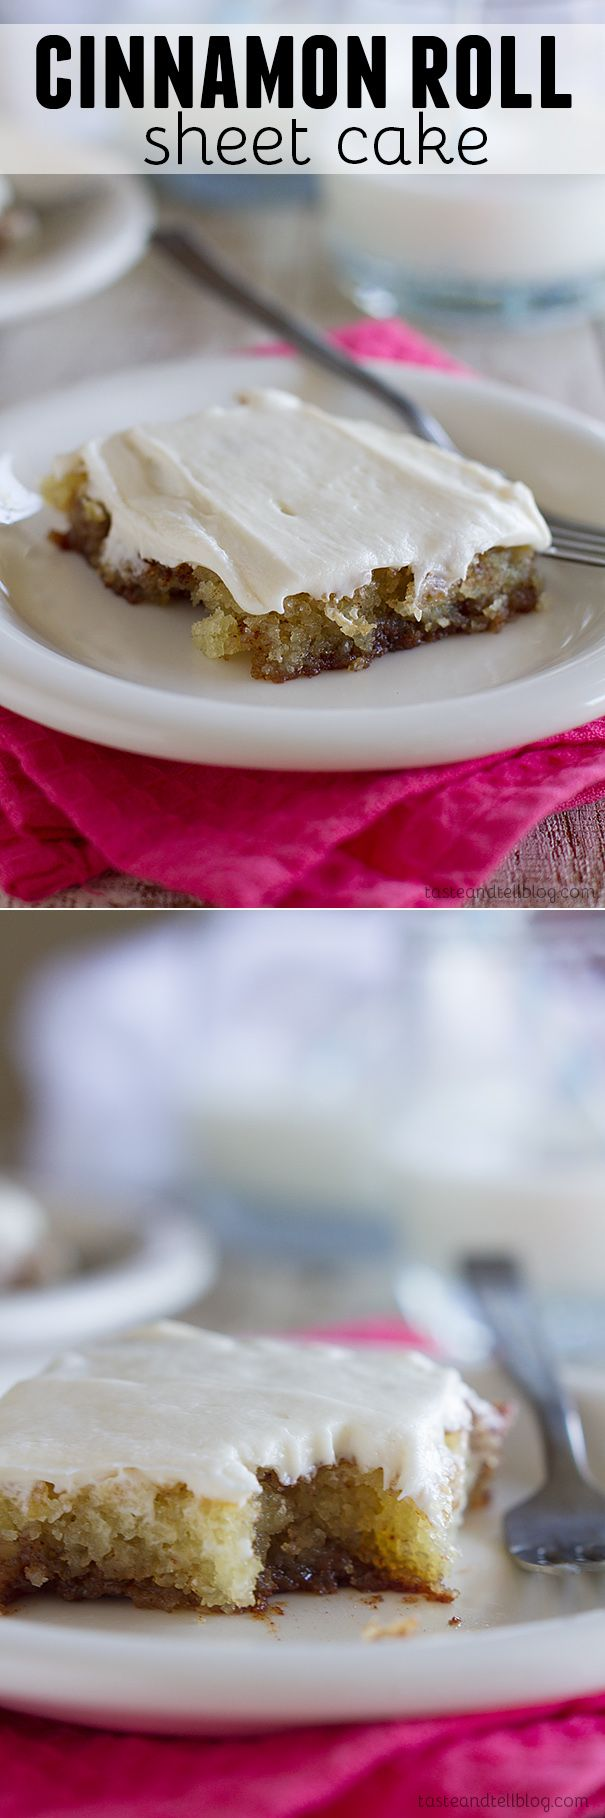 Cinnamon Roll Sheet Cake - Filled with cinnamon, spice and everything nice, this sheet cake is super tender and moist and addictive! Plus a review of The Girl Who Ate Everything Cookbook.